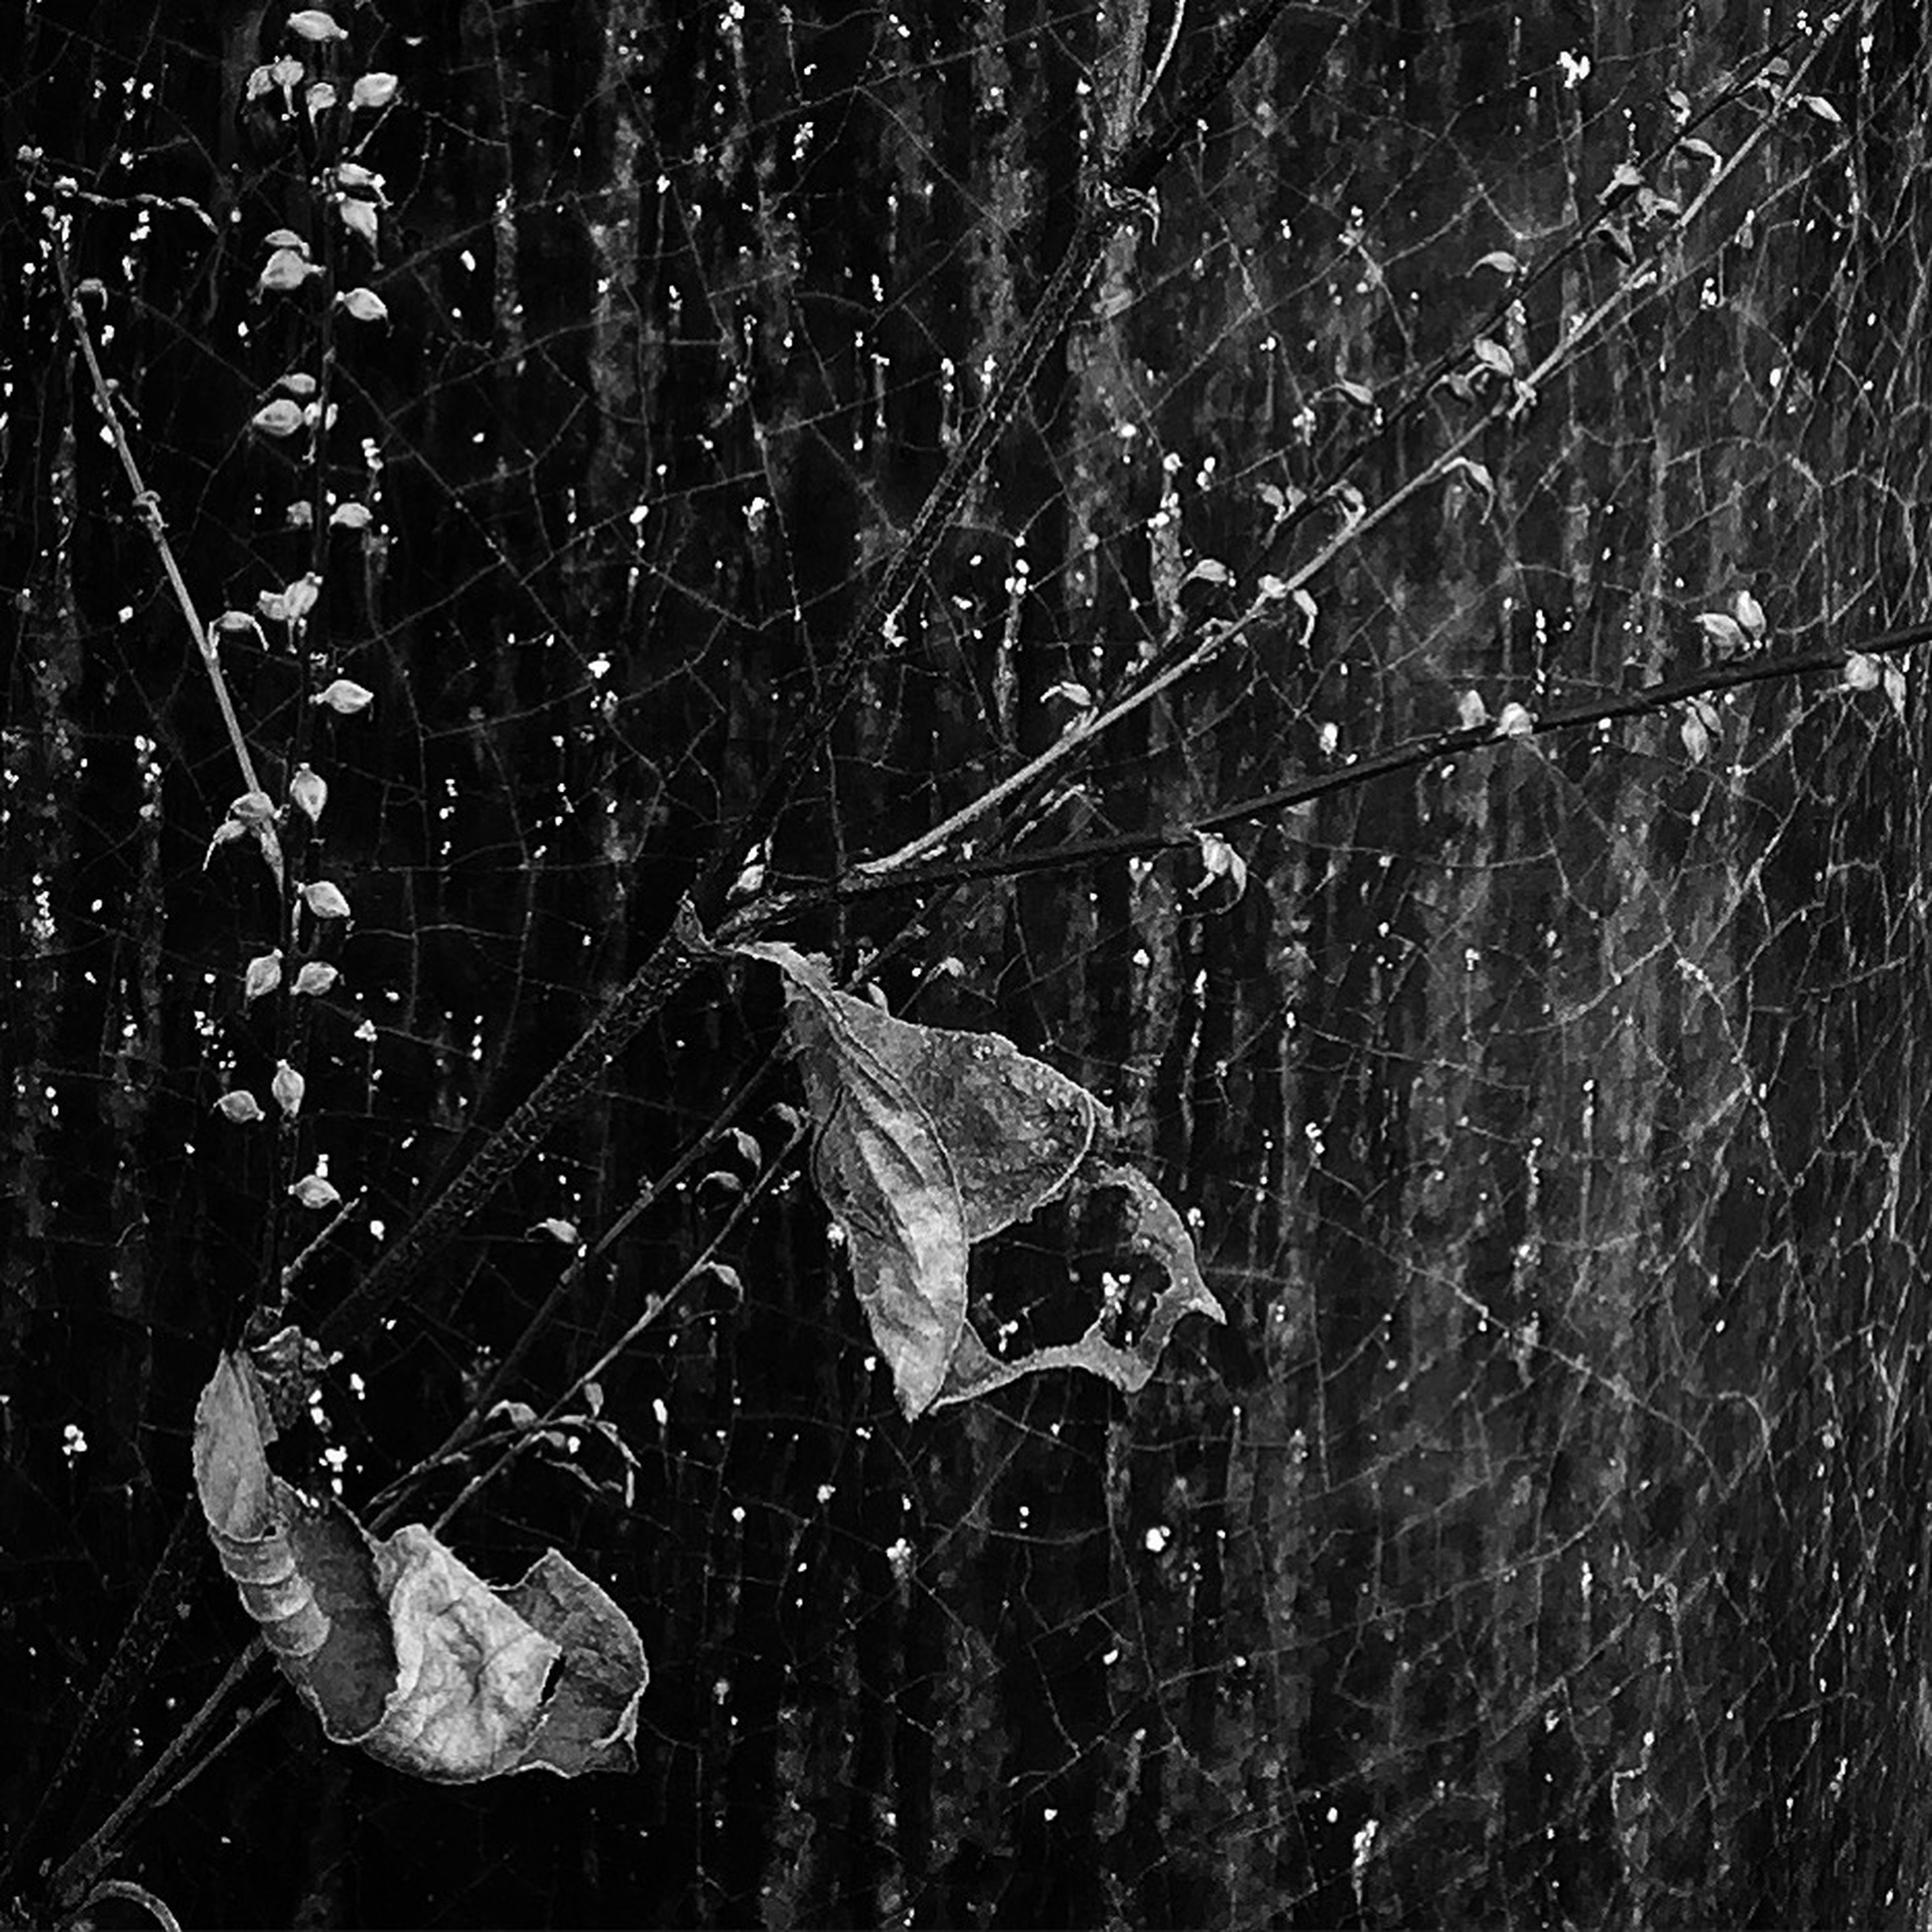 water, drop, spider web, close-up, night, wet, nature, focus on foreground, beauty in nature, motion, fragility, natural pattern, outdoors, reflection, purity, no people, splashing, dew, rain, raindrop